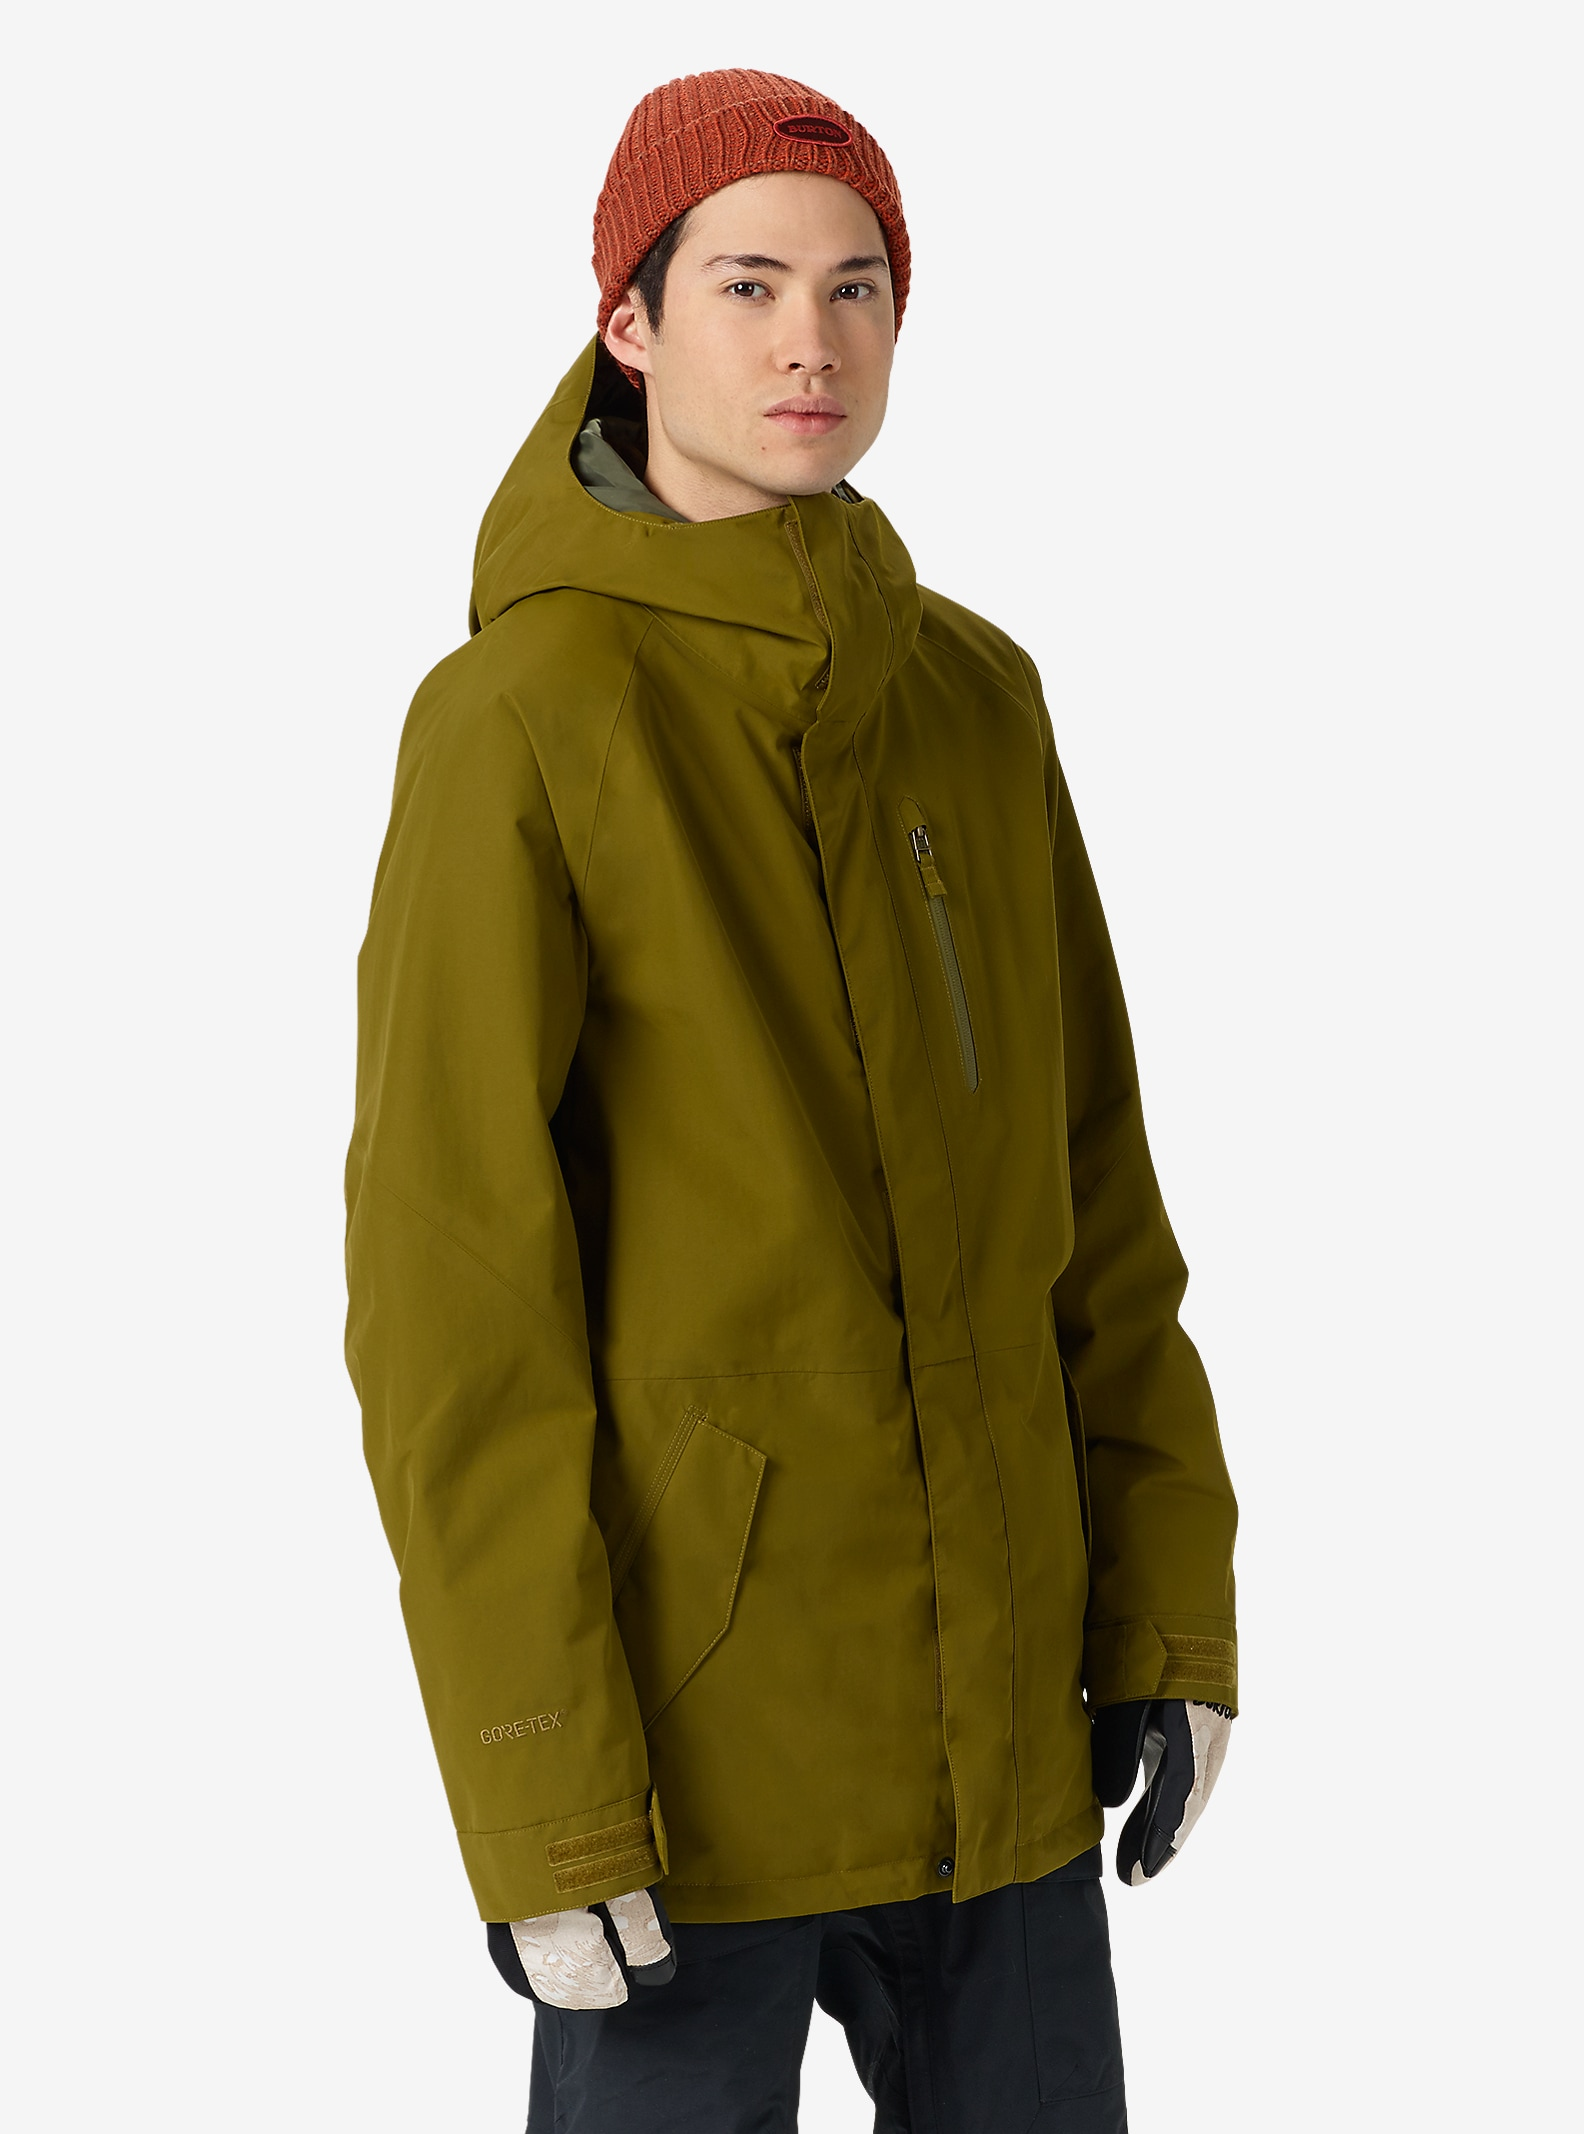 Burton Radial Jacket shown in Fir